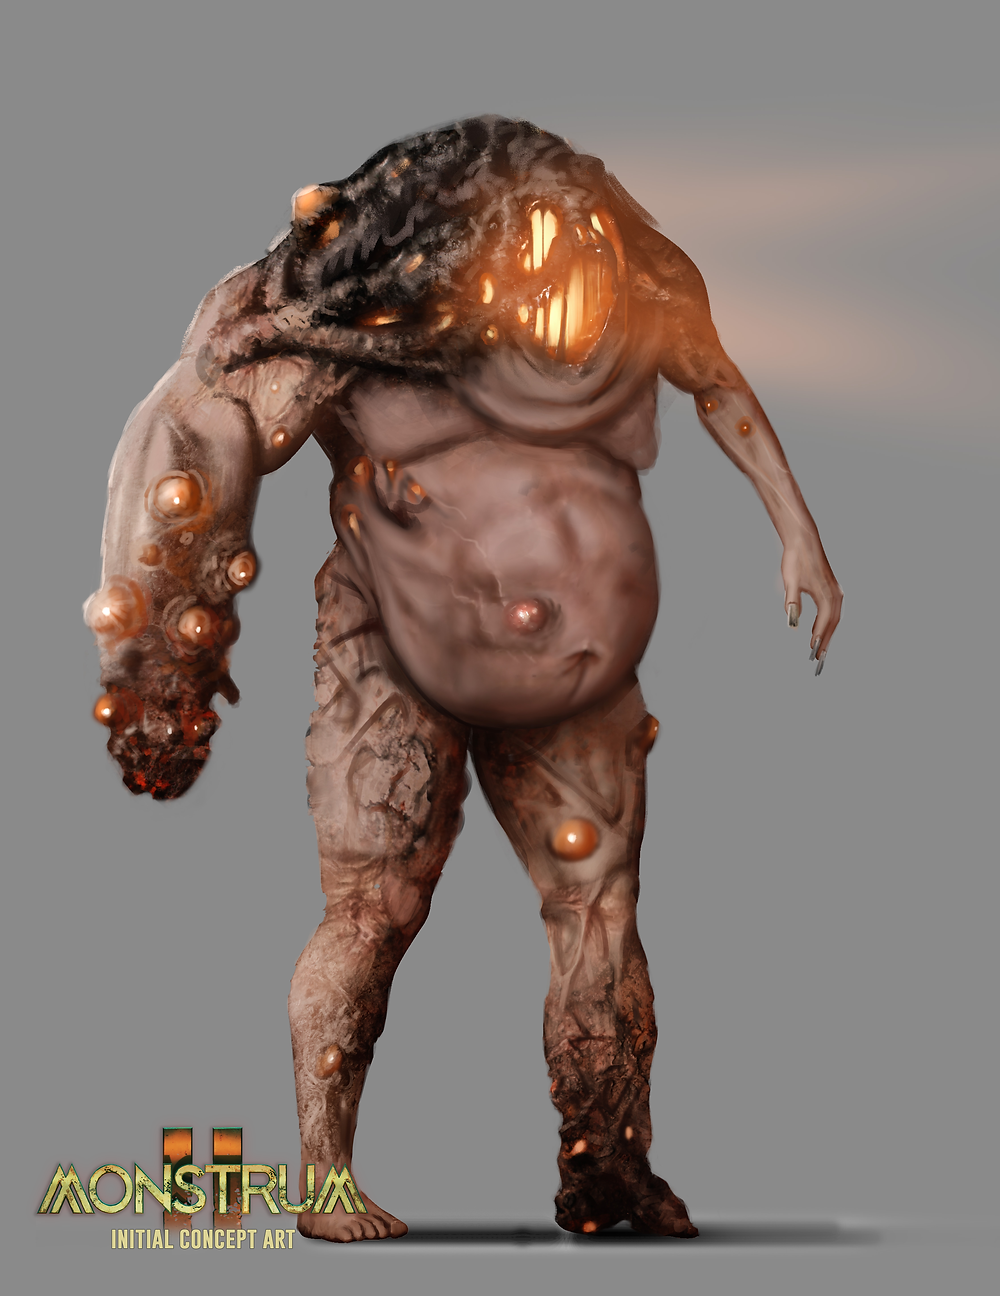 A concept for a new version of the Brute from the original Monstrum. This one features a more humanoid, rotund stomach, a hunchback, and a more oozing face.